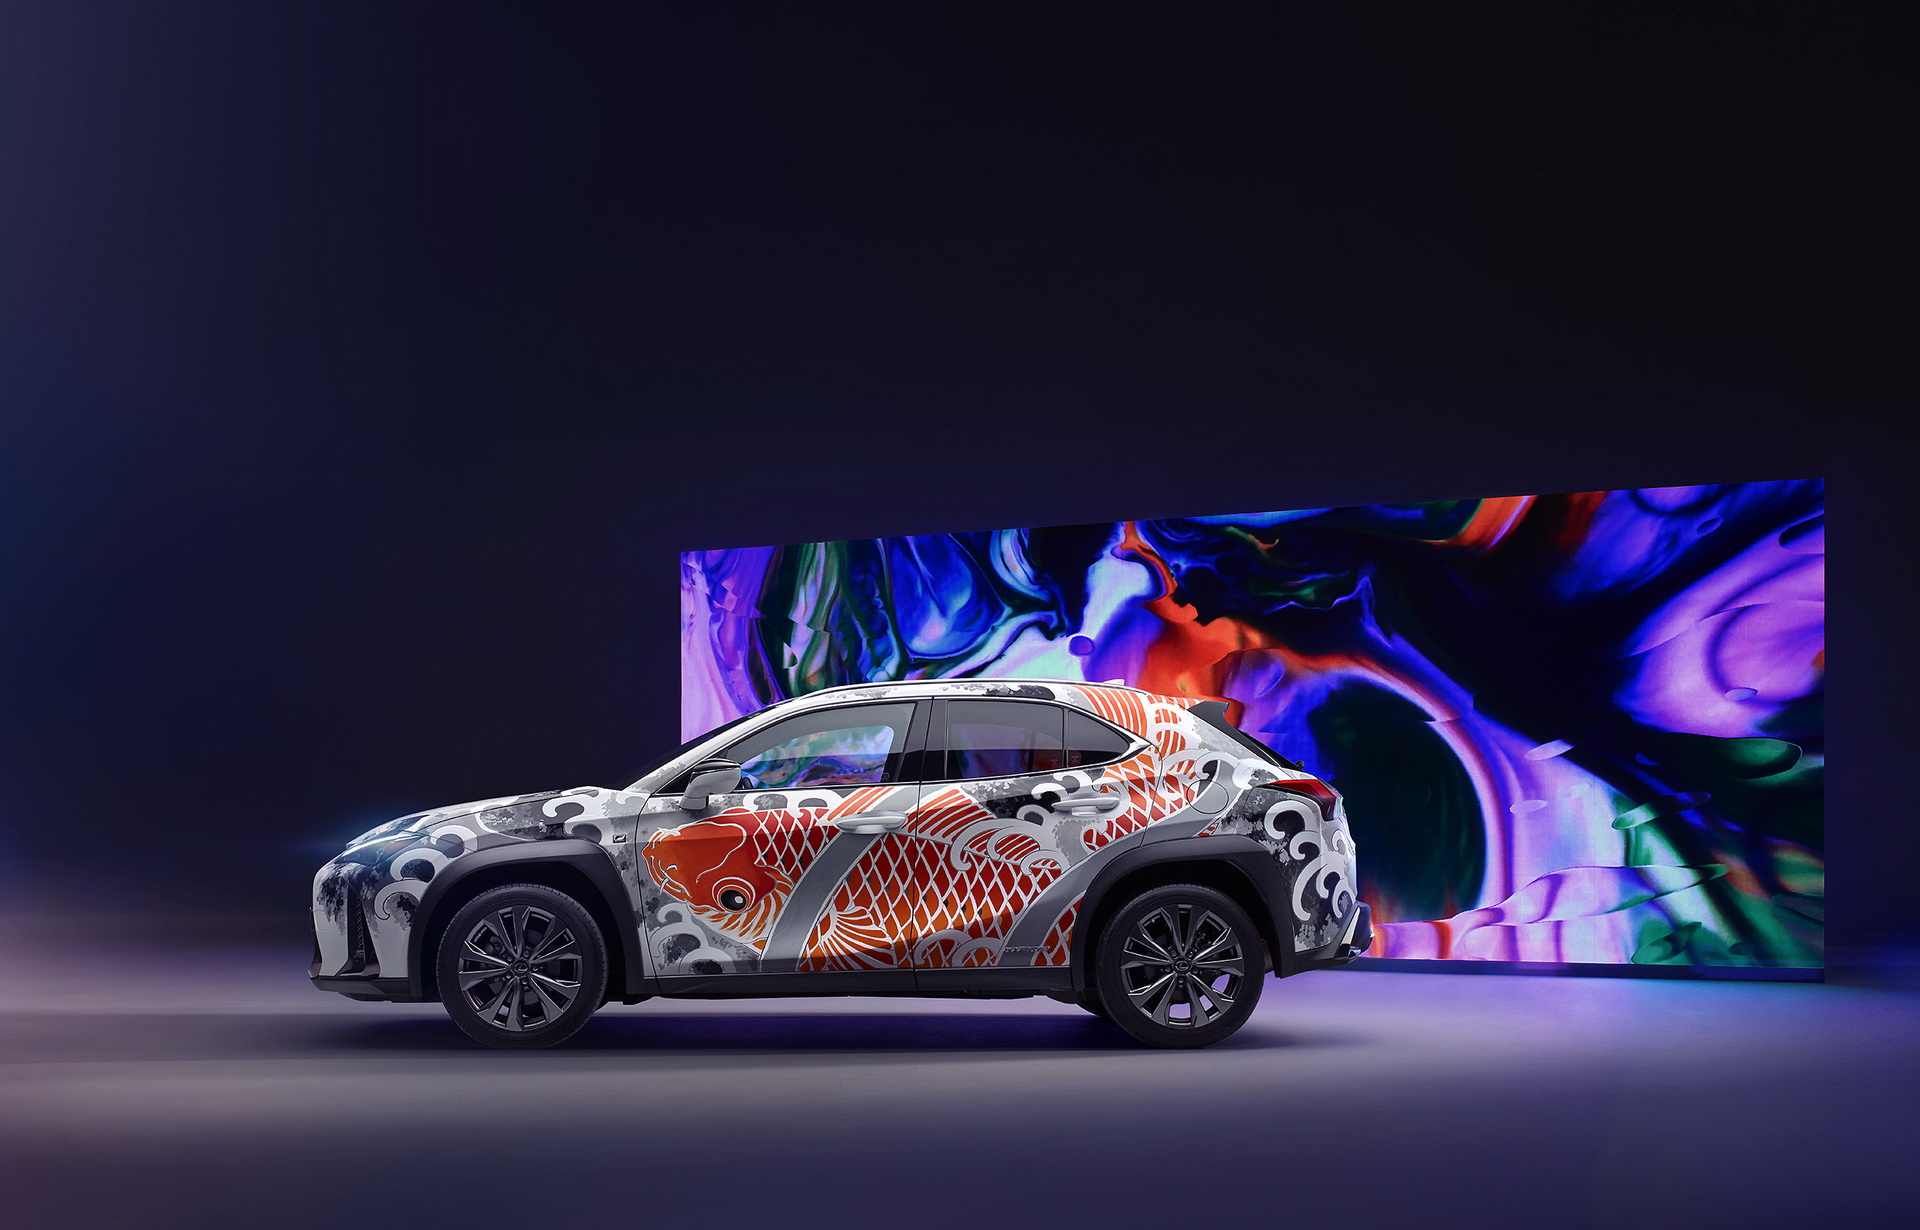 2020-lexus-ux-tatooted-car-3